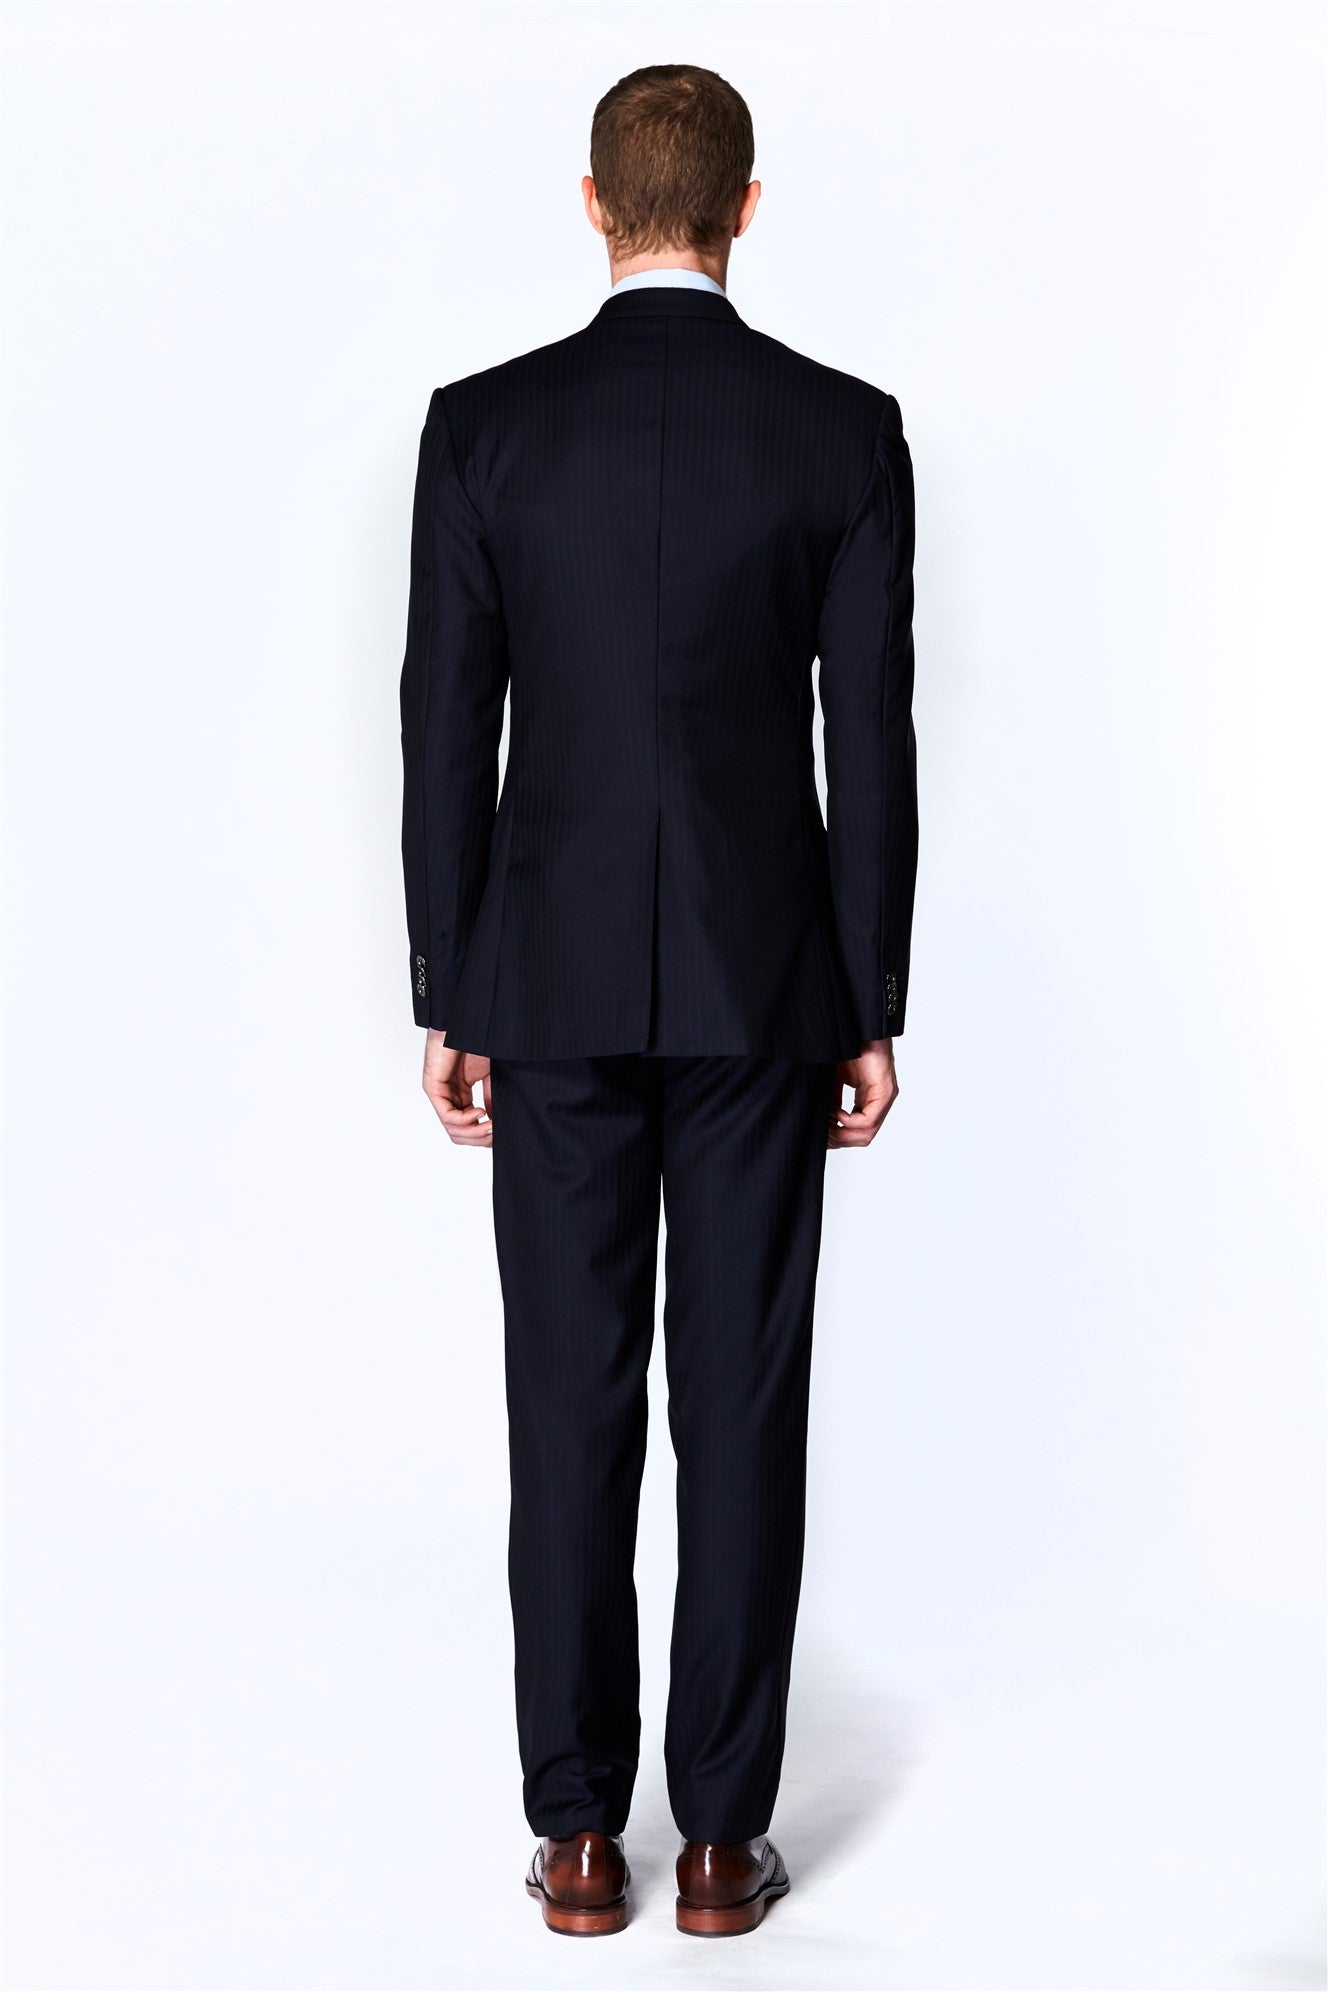 Navy Herringbone Suit (Italian Wool)